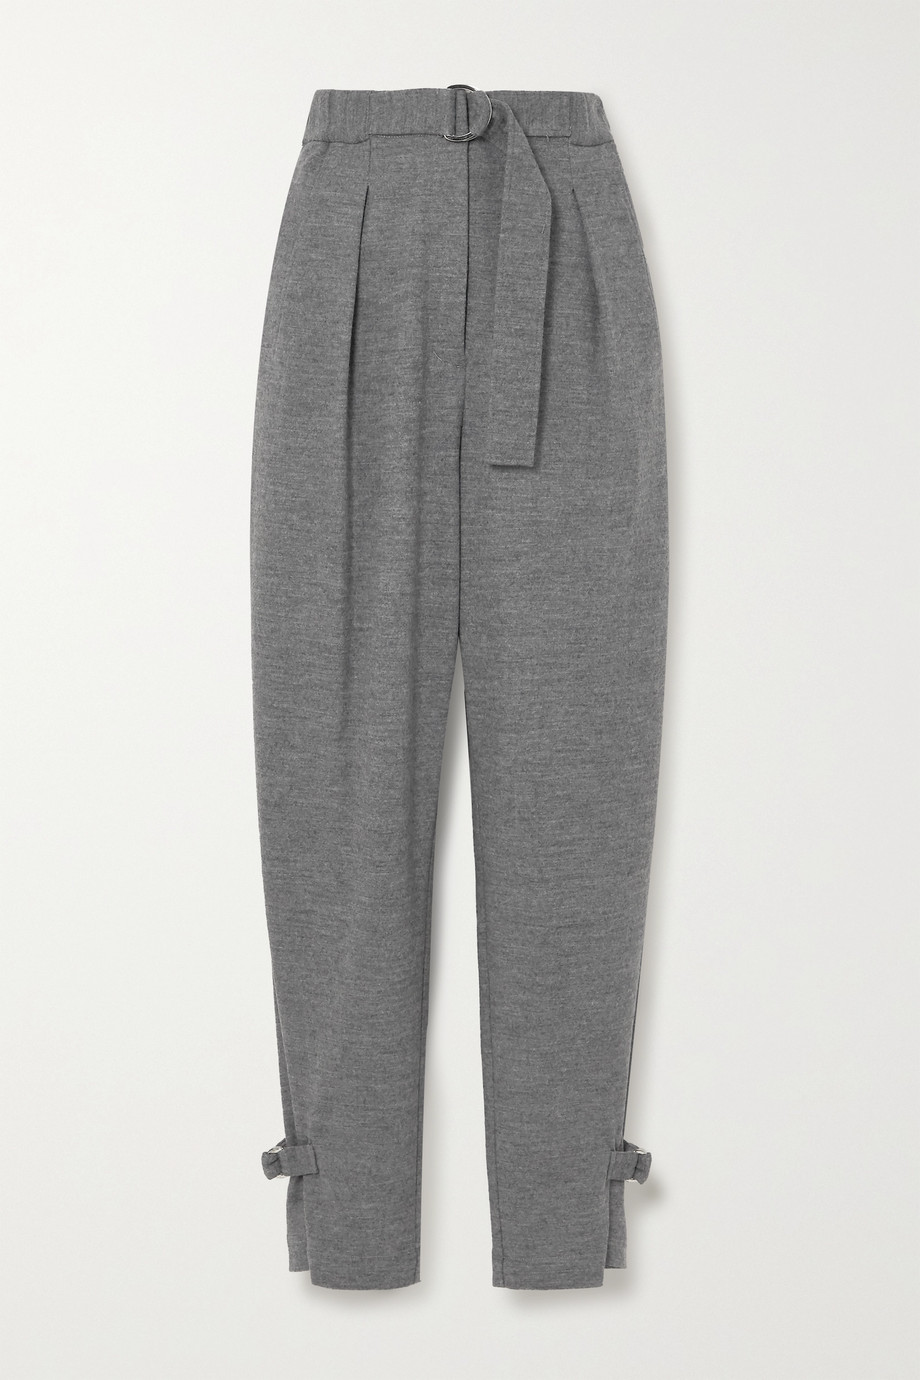 3.1 PHILLIP LIM Belted pleated mélange wool tapered pants